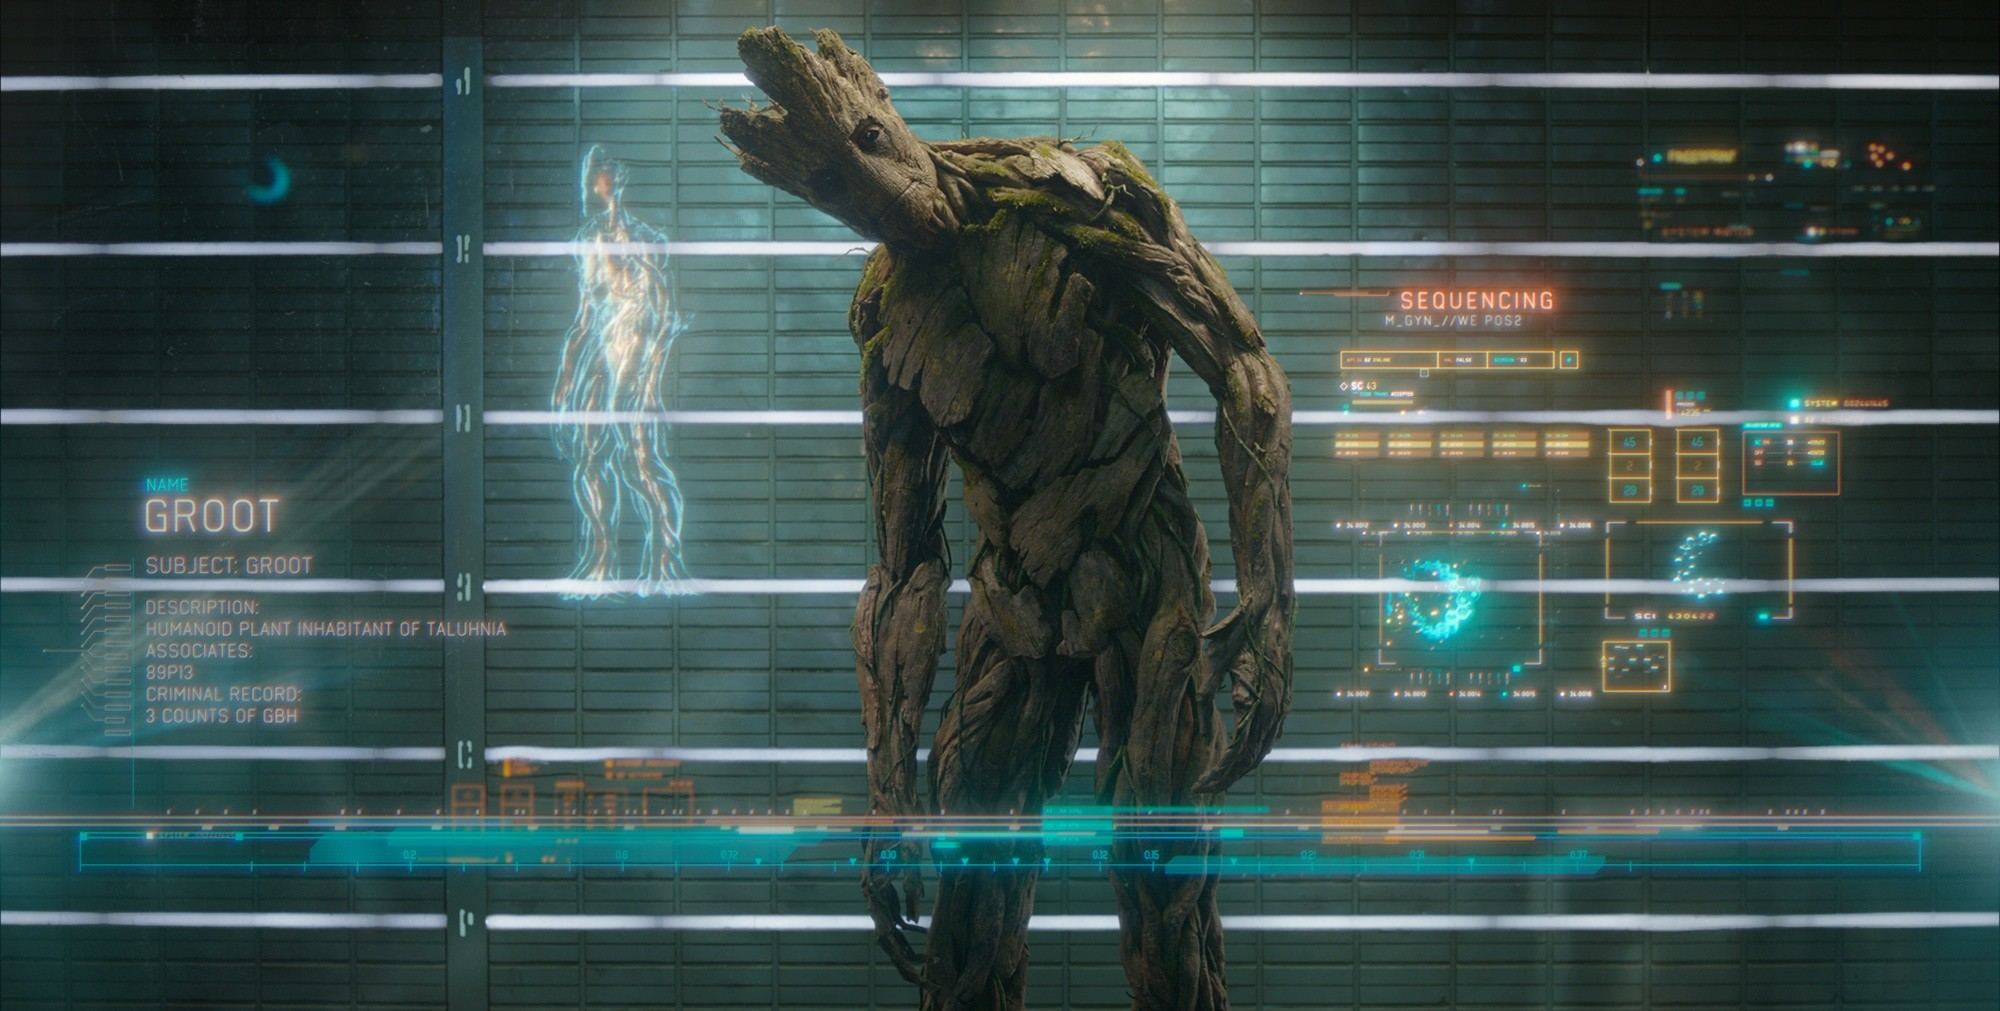 Groot in Guardians of the Galaxy (2014)